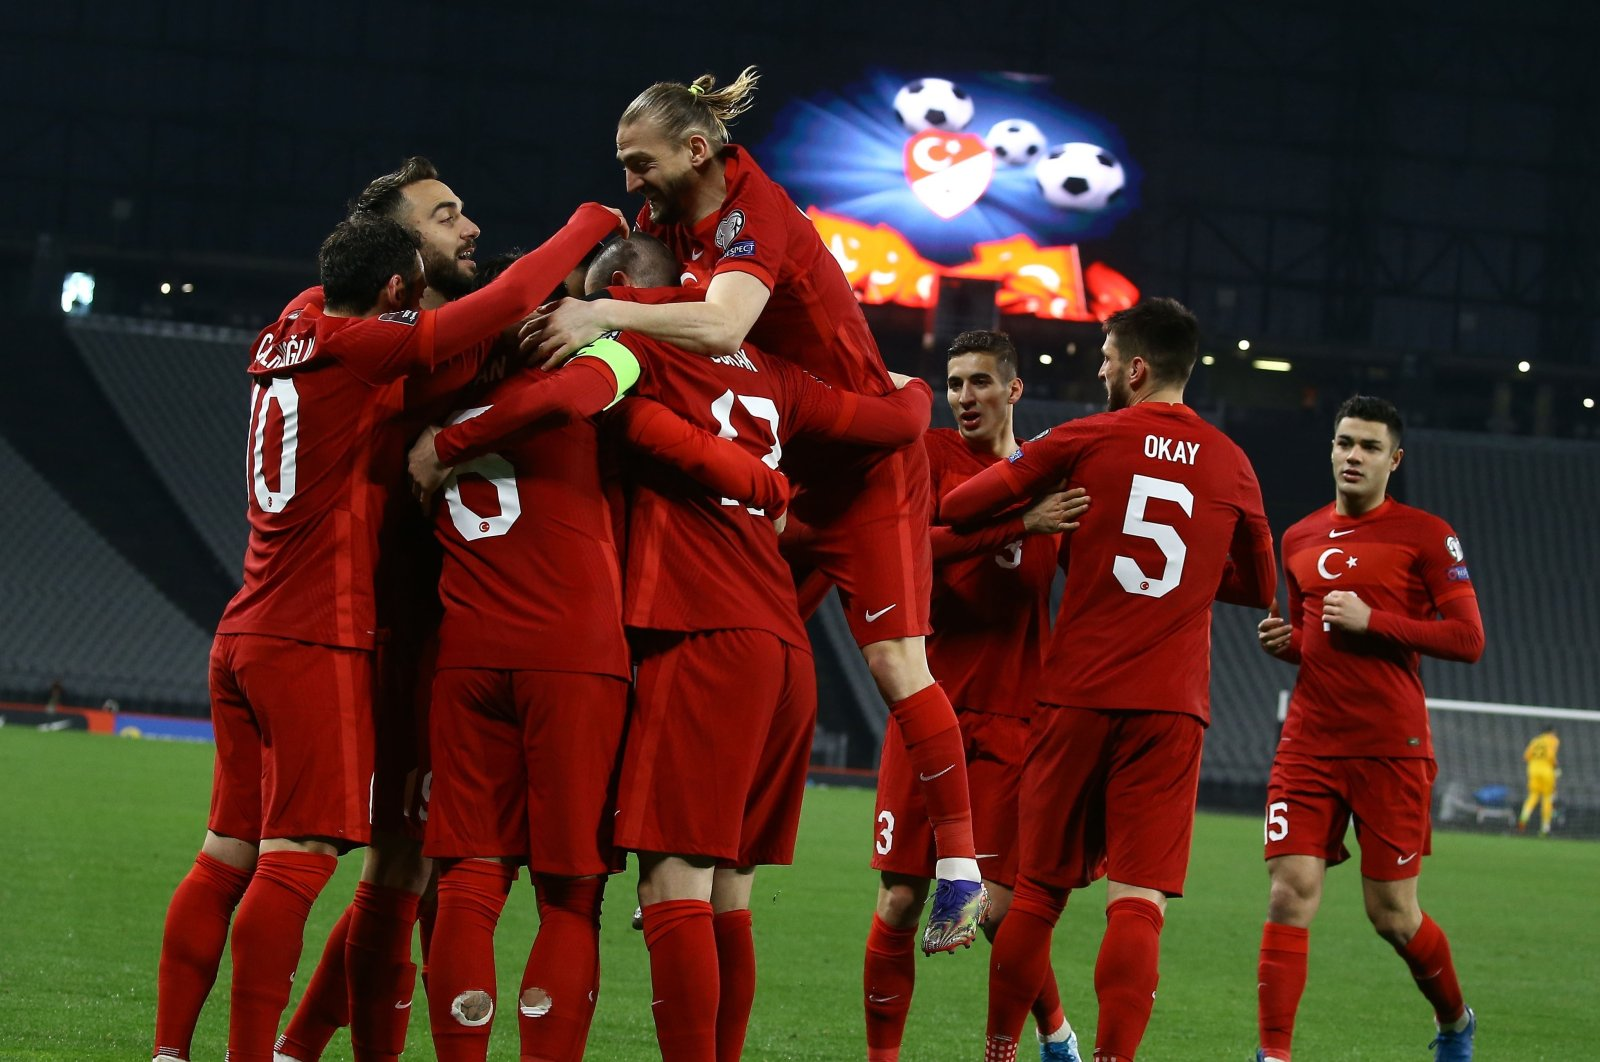 Turkish national team players celebrate a goal against Latvia in a 2022 World Cup qualifiers match at Atatürk Olympic Stadium, Istanbul, Turkey, March 30, 2021. (IHA Photo)